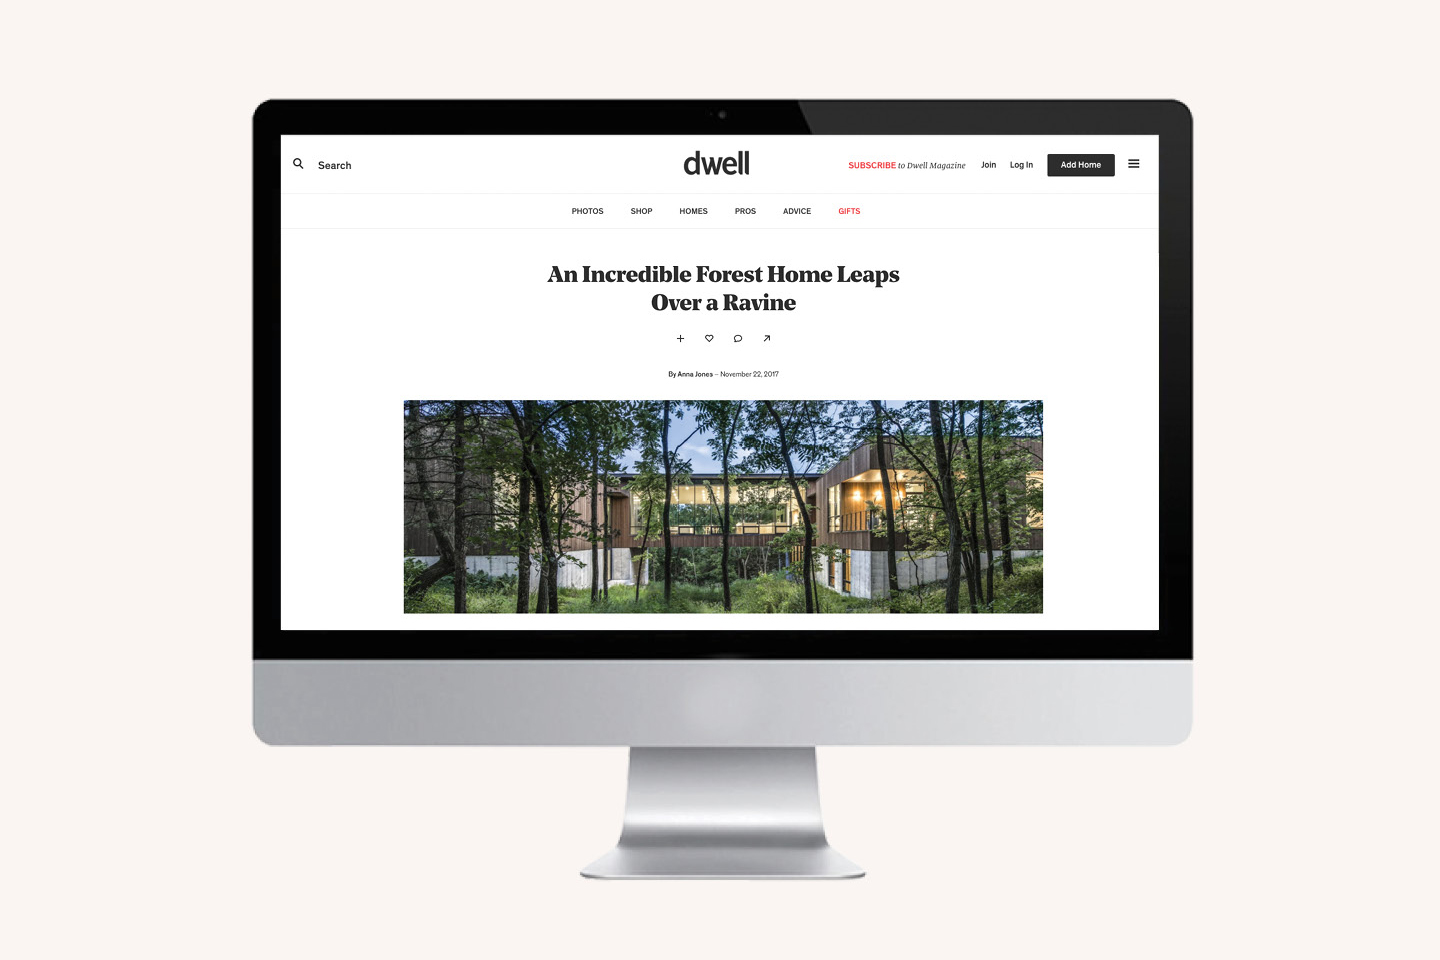 Ravine Residence on the Homepage of Dwell